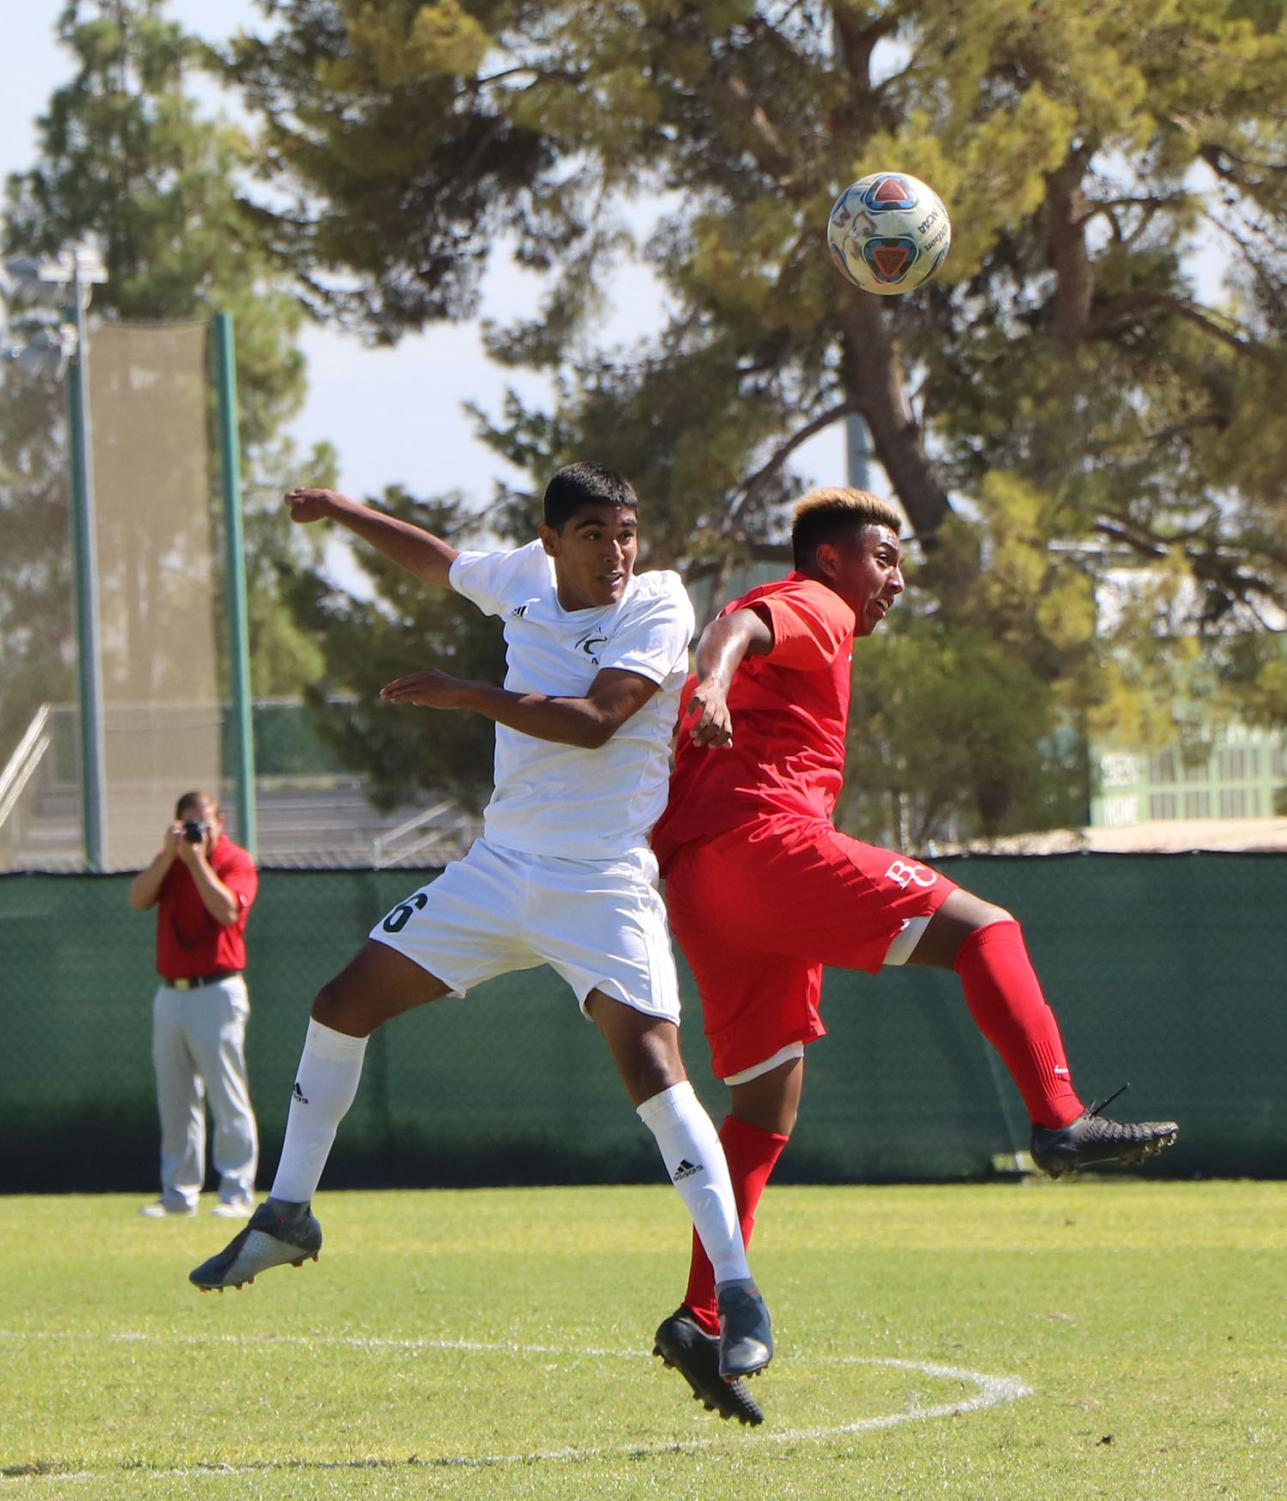 Bakersfield College Men Soccer's defensive midfielder Angel Cervantes (7) during the first half of the Renegades' host game against East LA College at the BC Soccer Field, Sept. 10. BC took the win, 1-0.